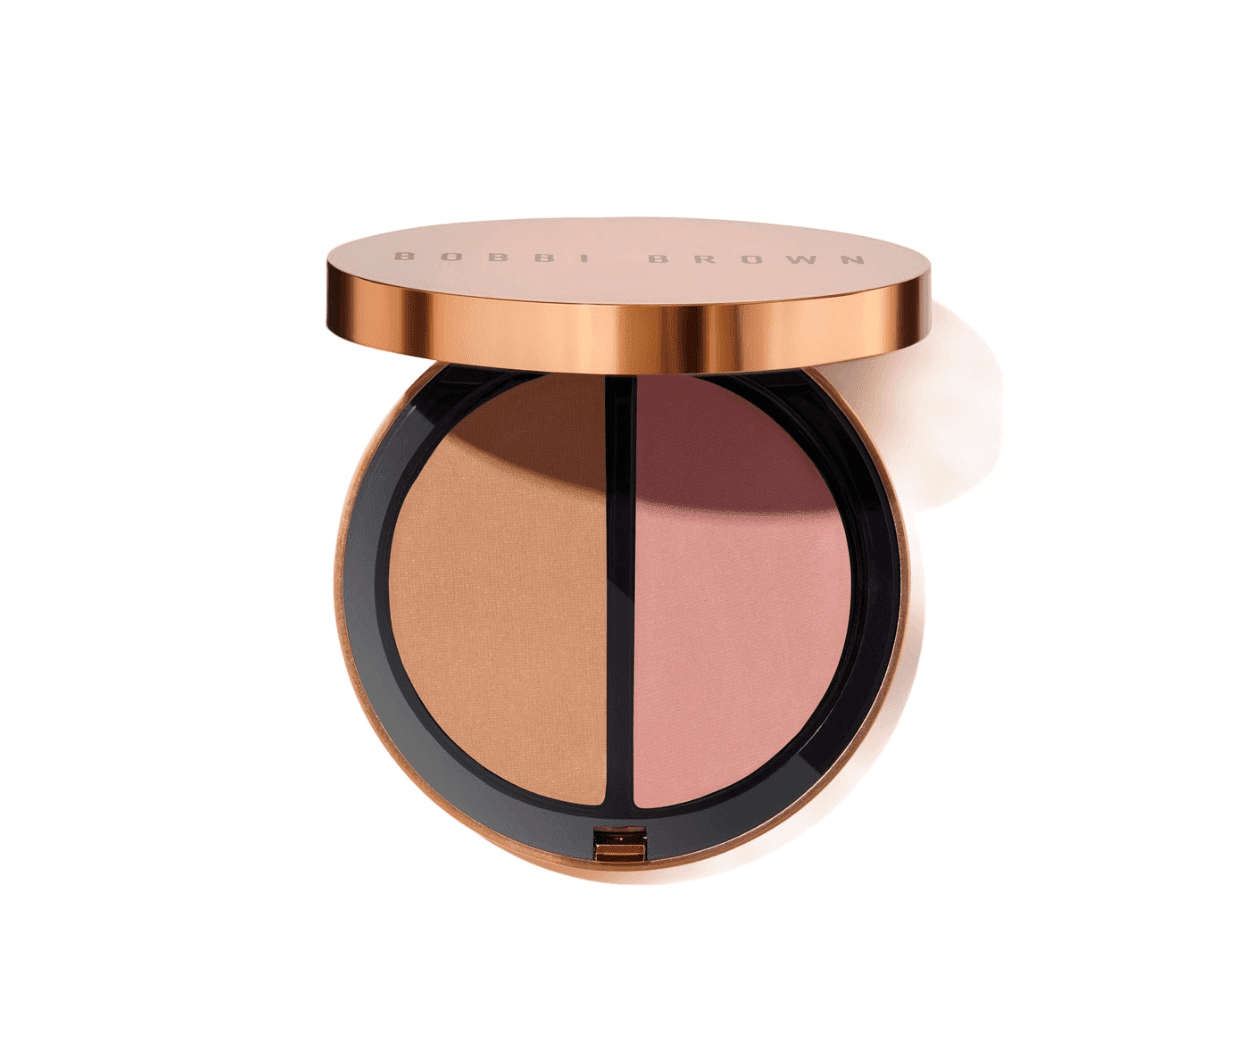 Bobbi Brown Maquillage été 2020 golden light